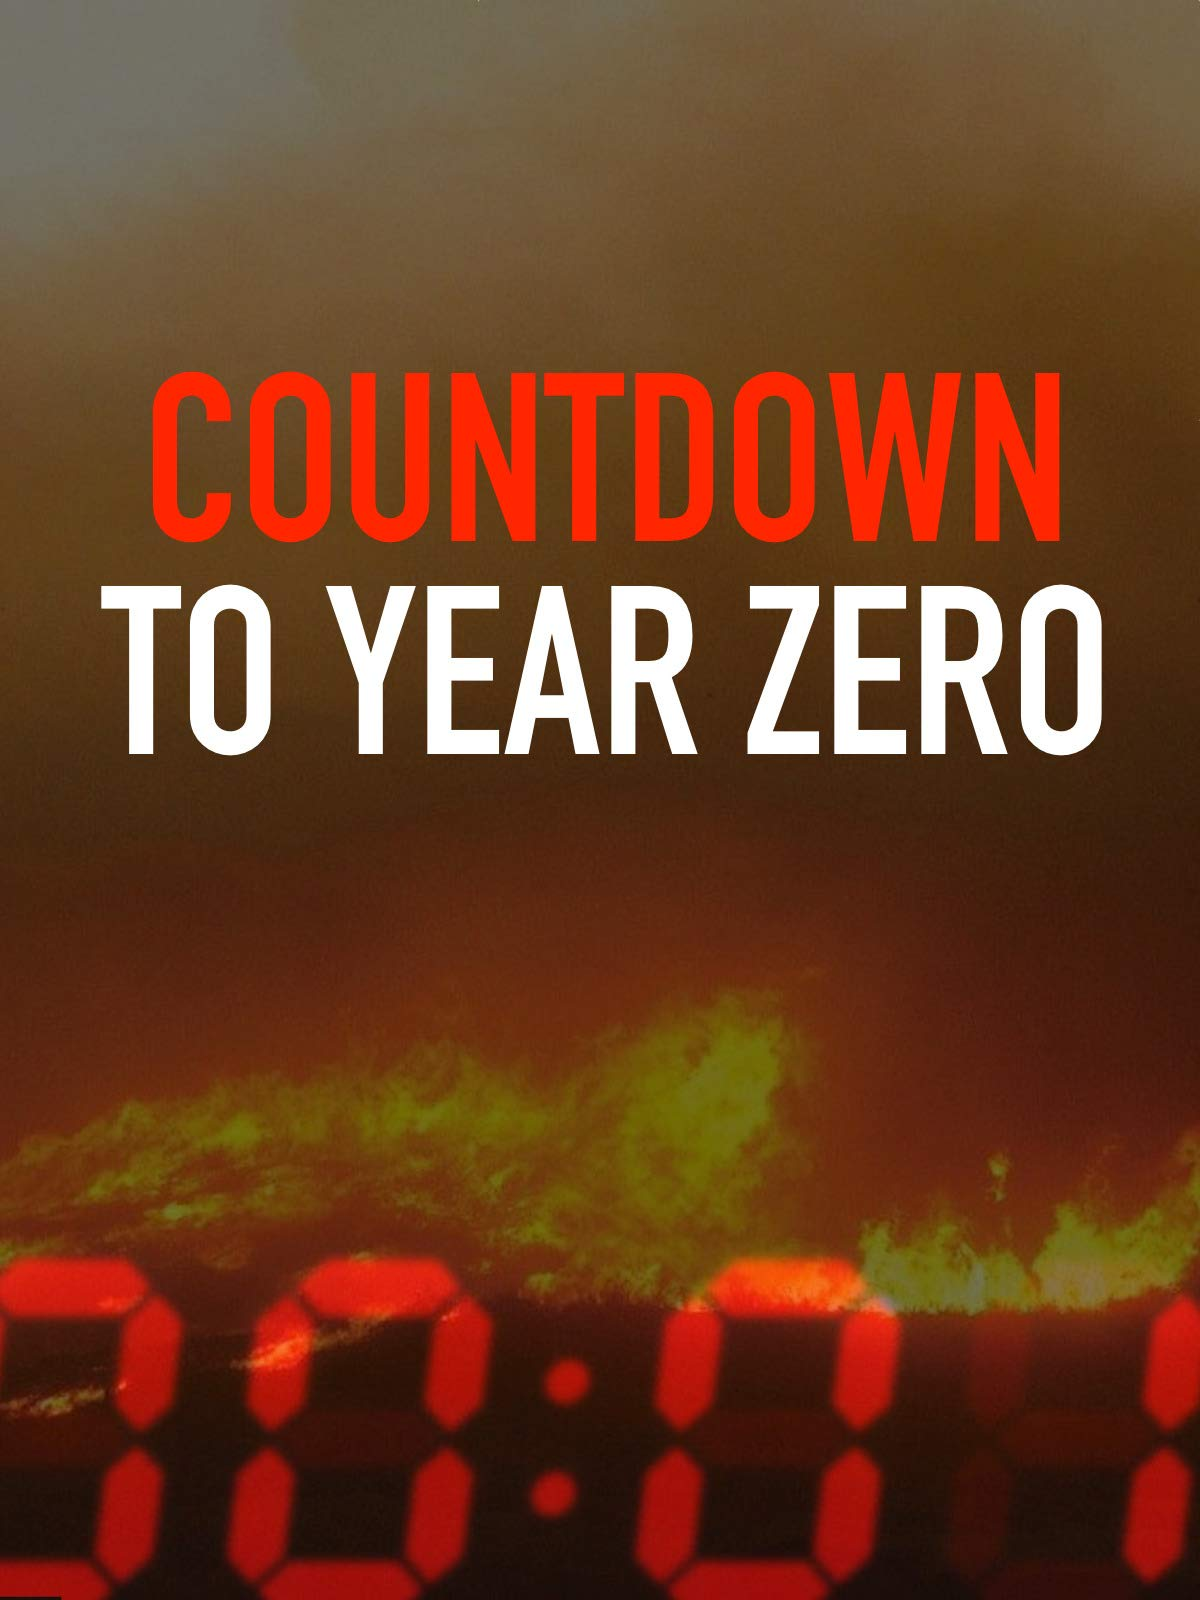 Countdown to Year Zero